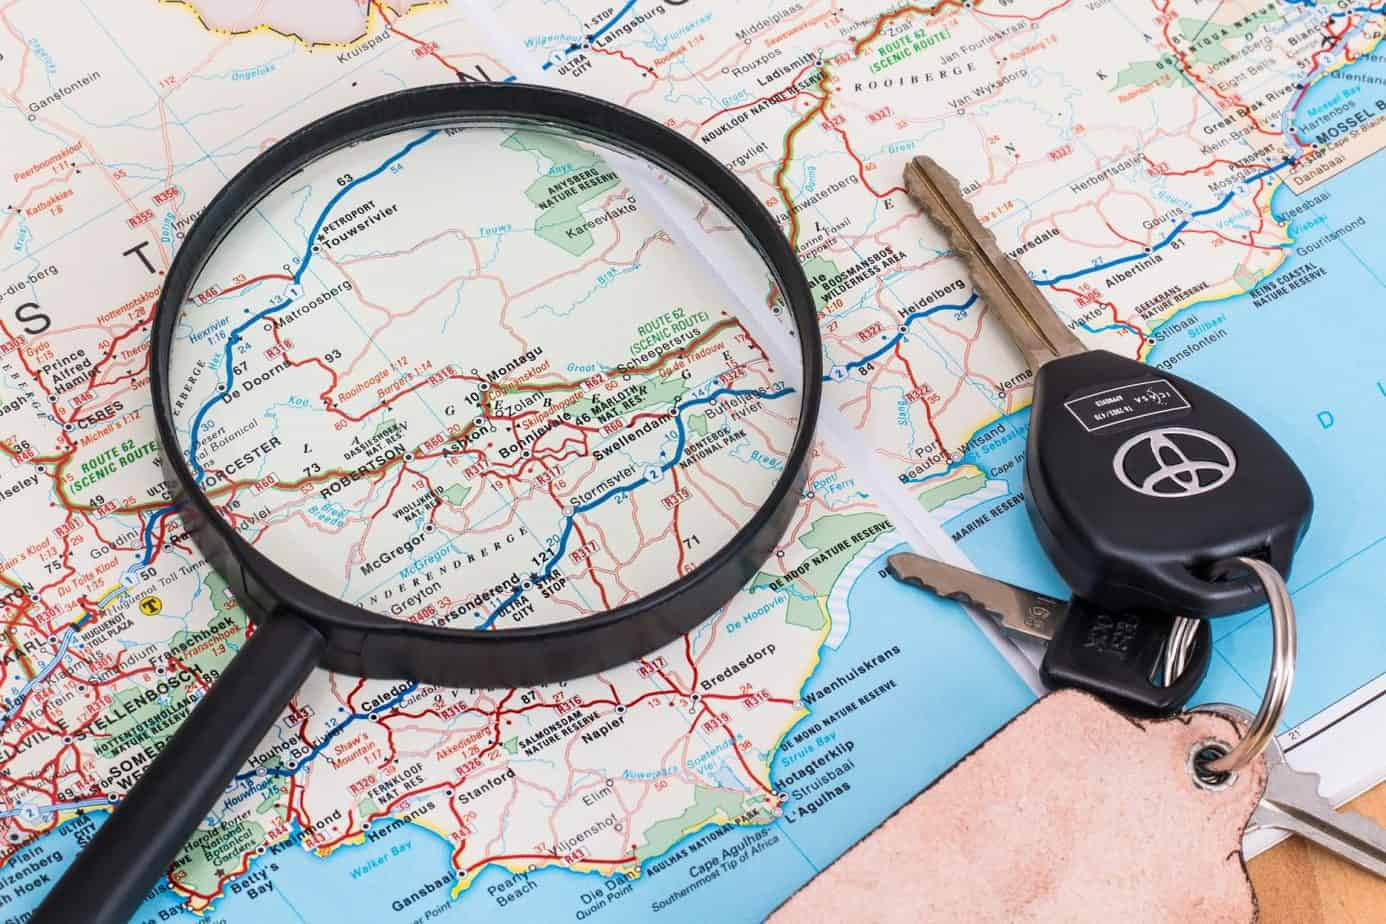 A map, magnifying glass and car keys are all ready for our next road trip with kids